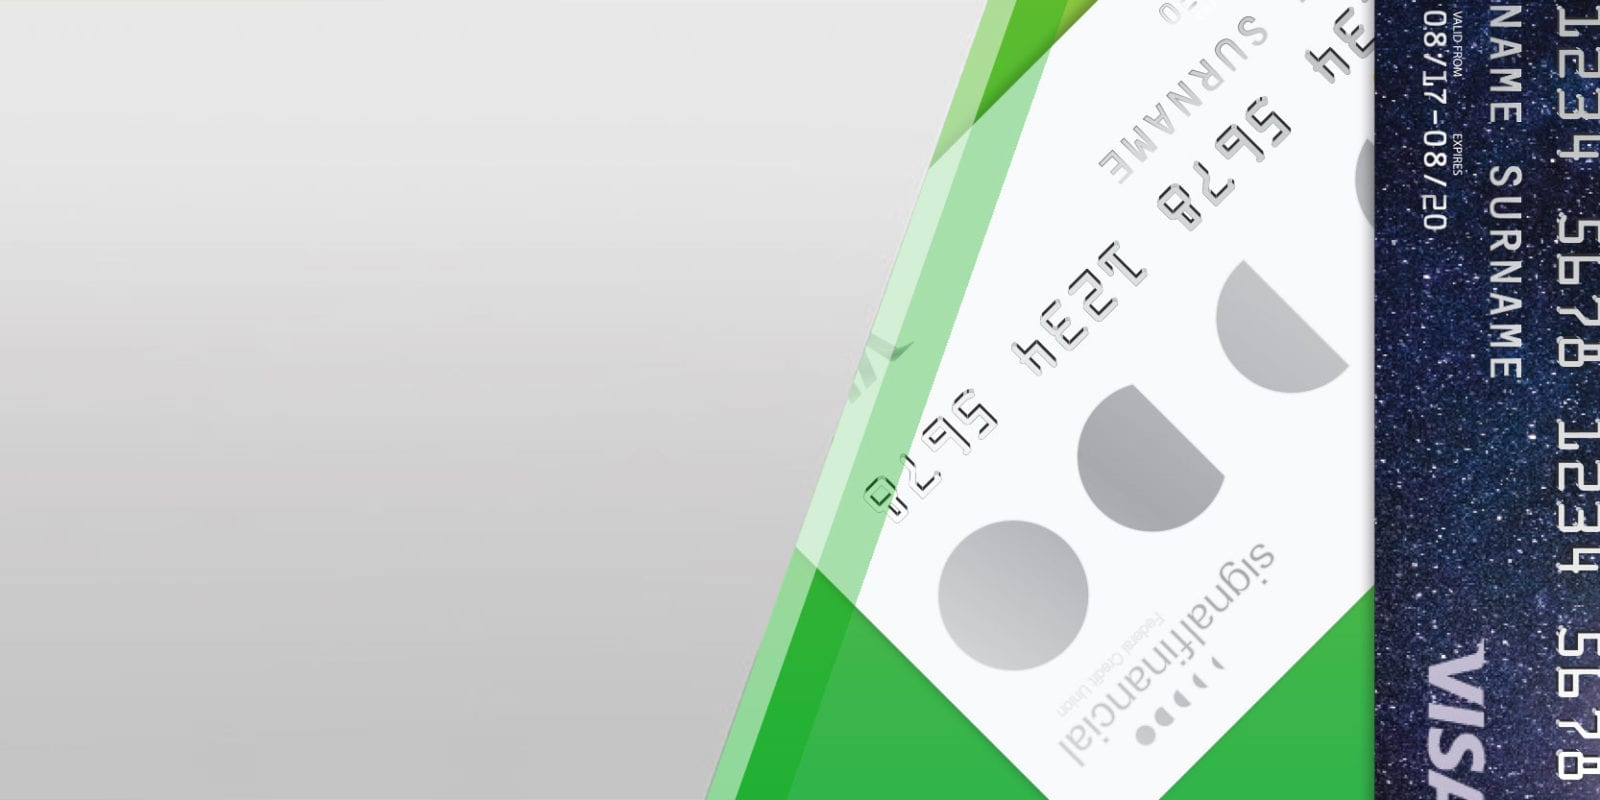 Credit card hero image showing three Signal credit cards fanned out on a green background